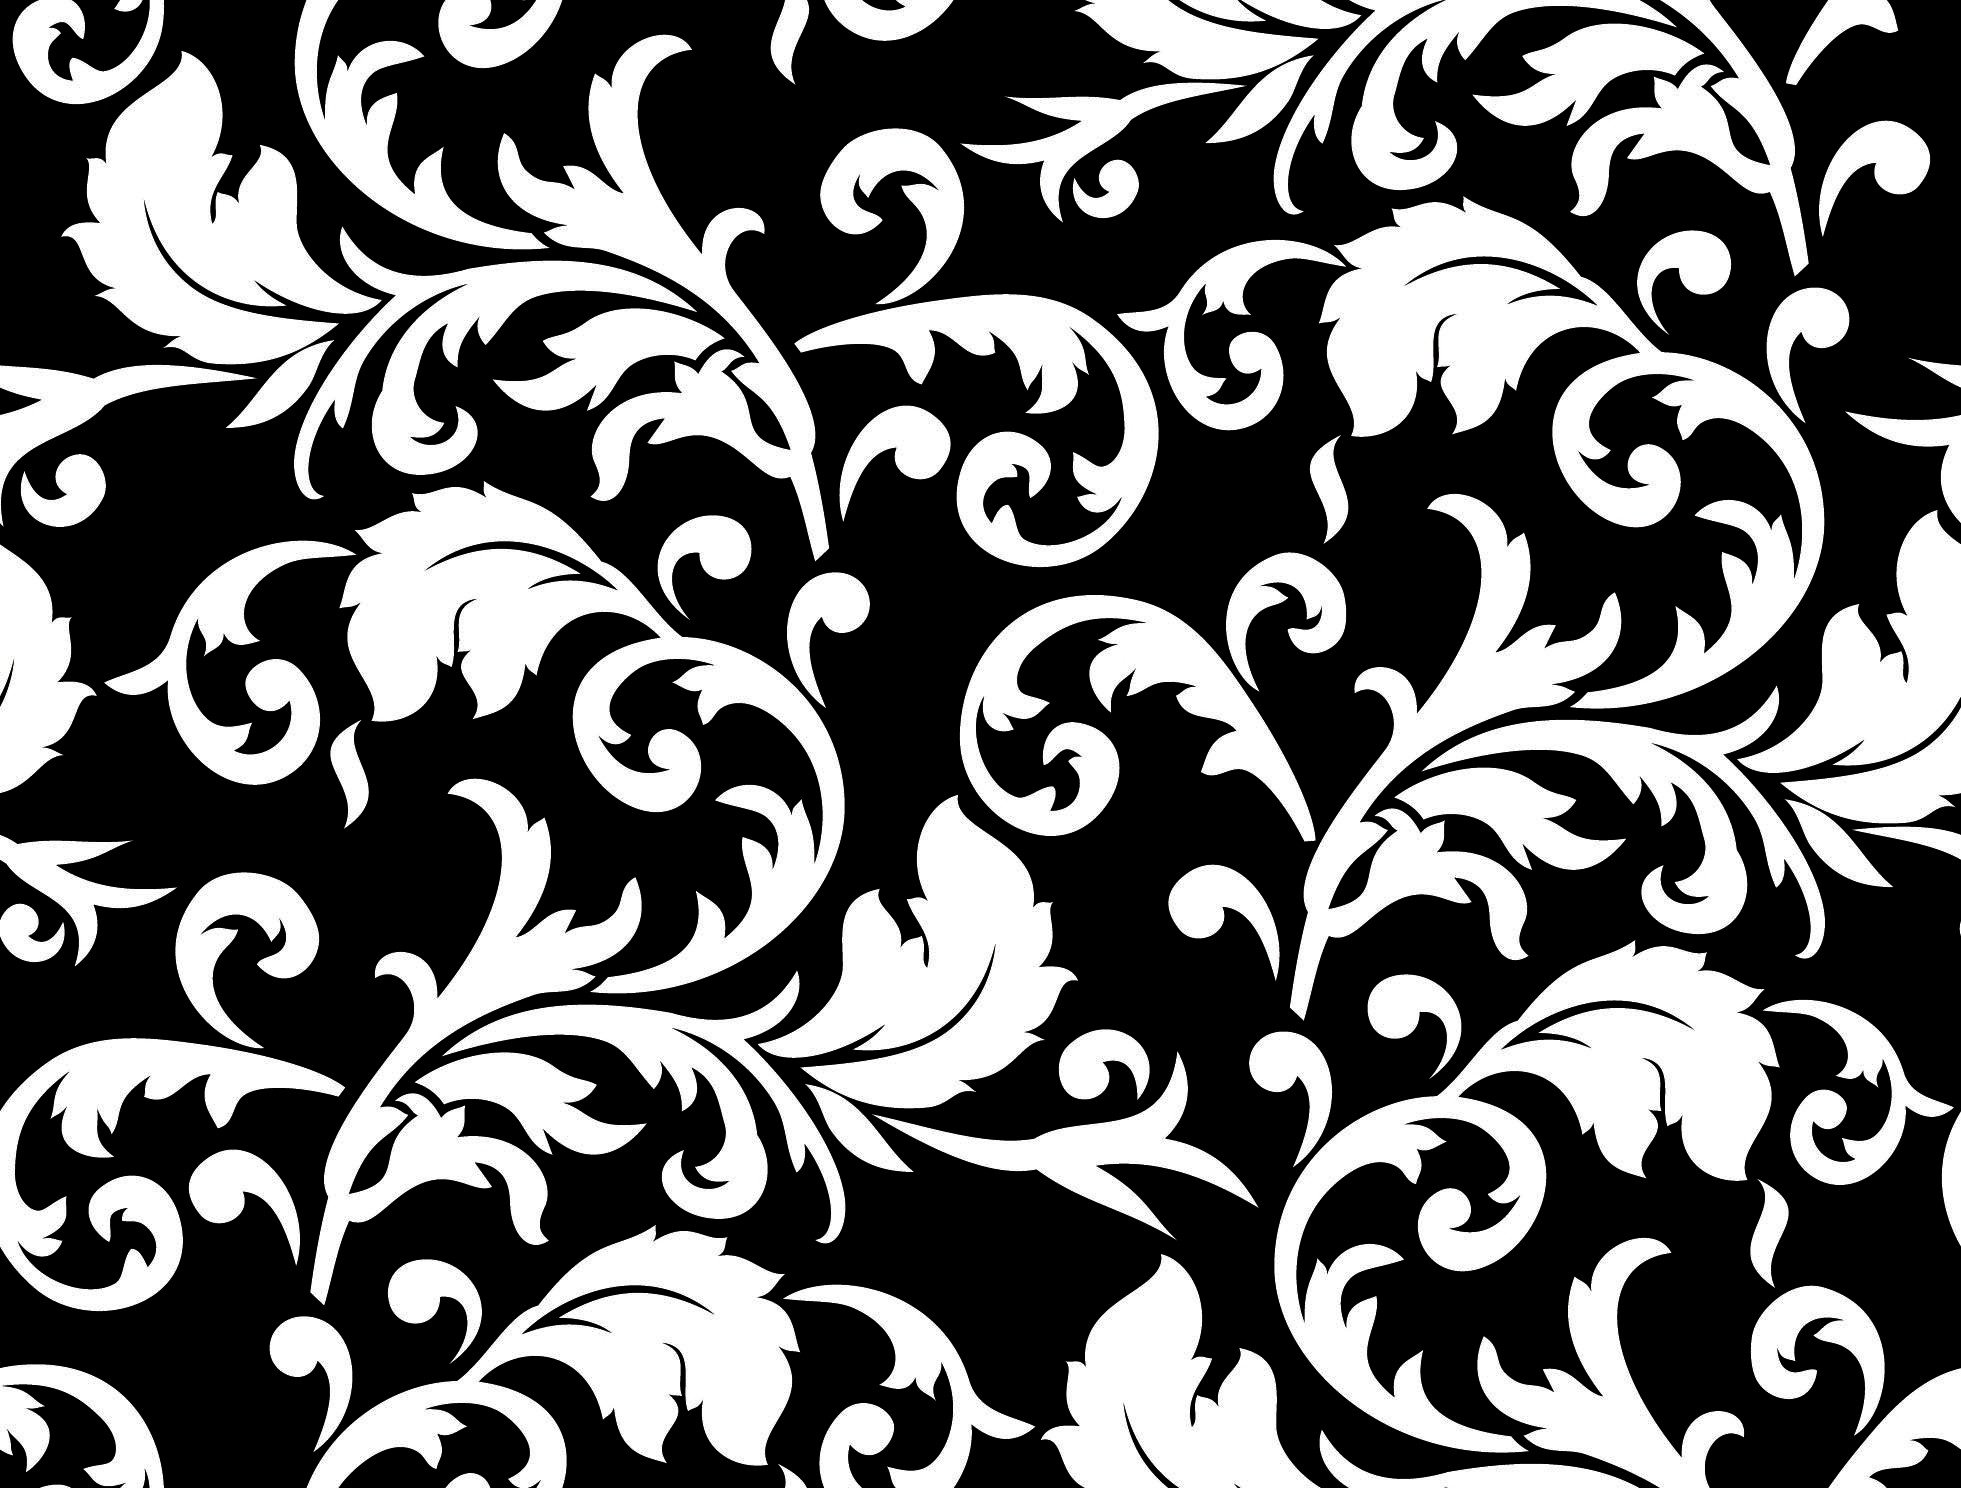 Patterns Black and White Black and White Floral Patterns